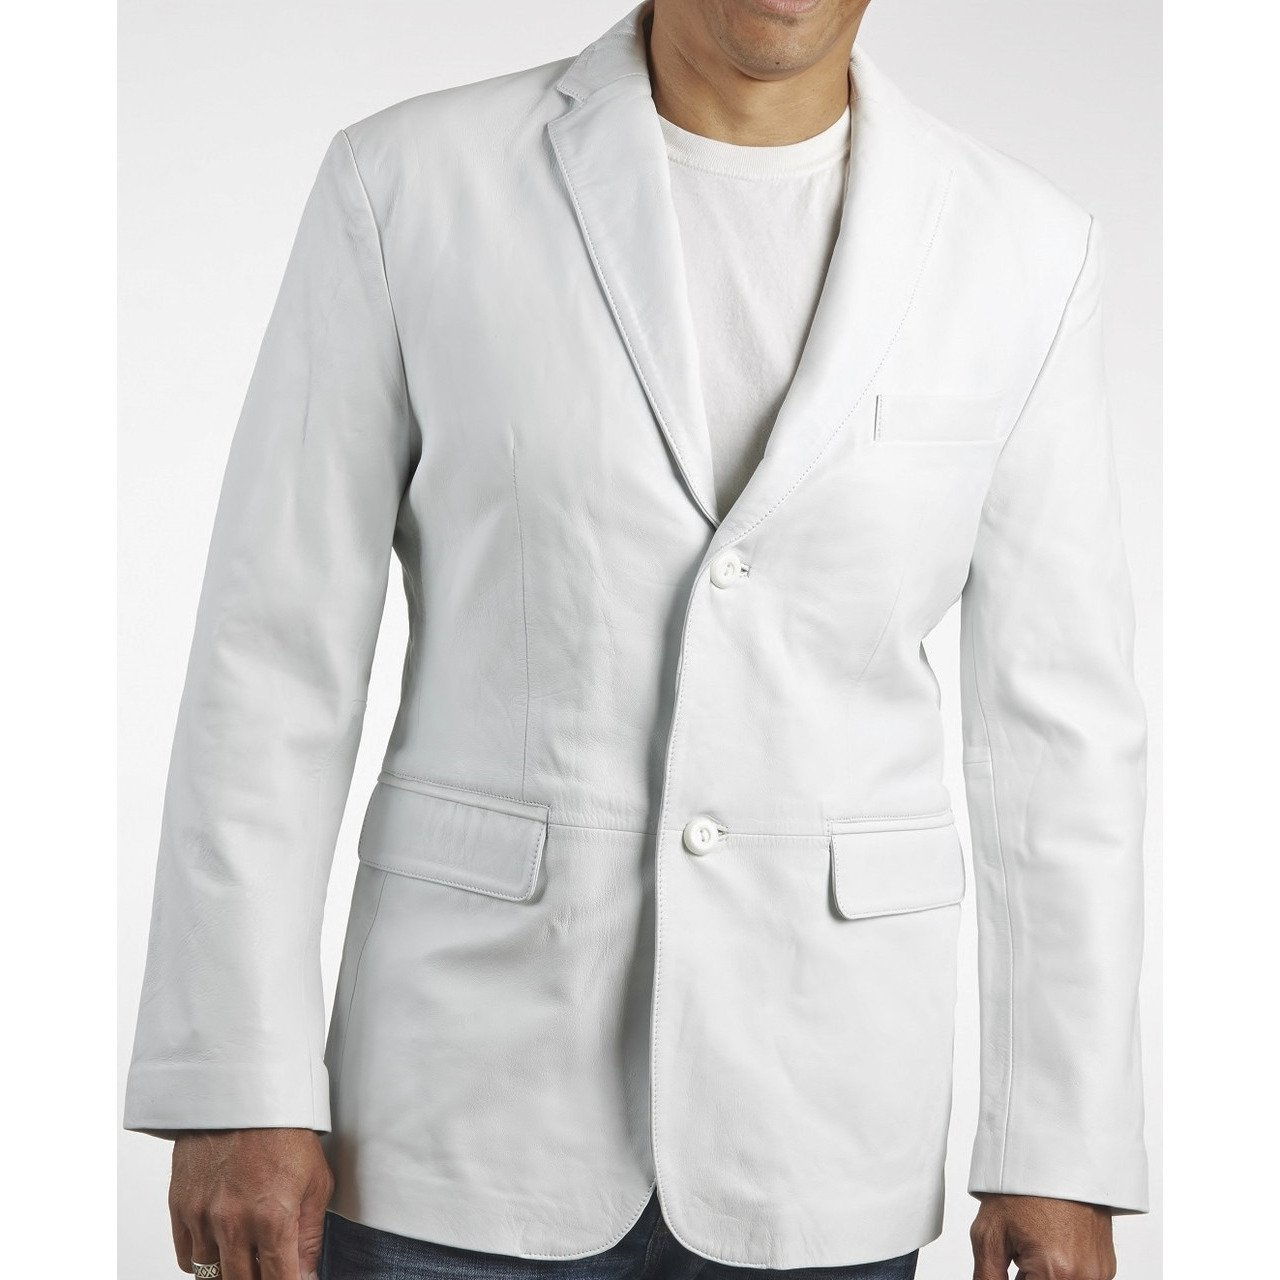 Mens Classic White Leather Blazer - fadcloset